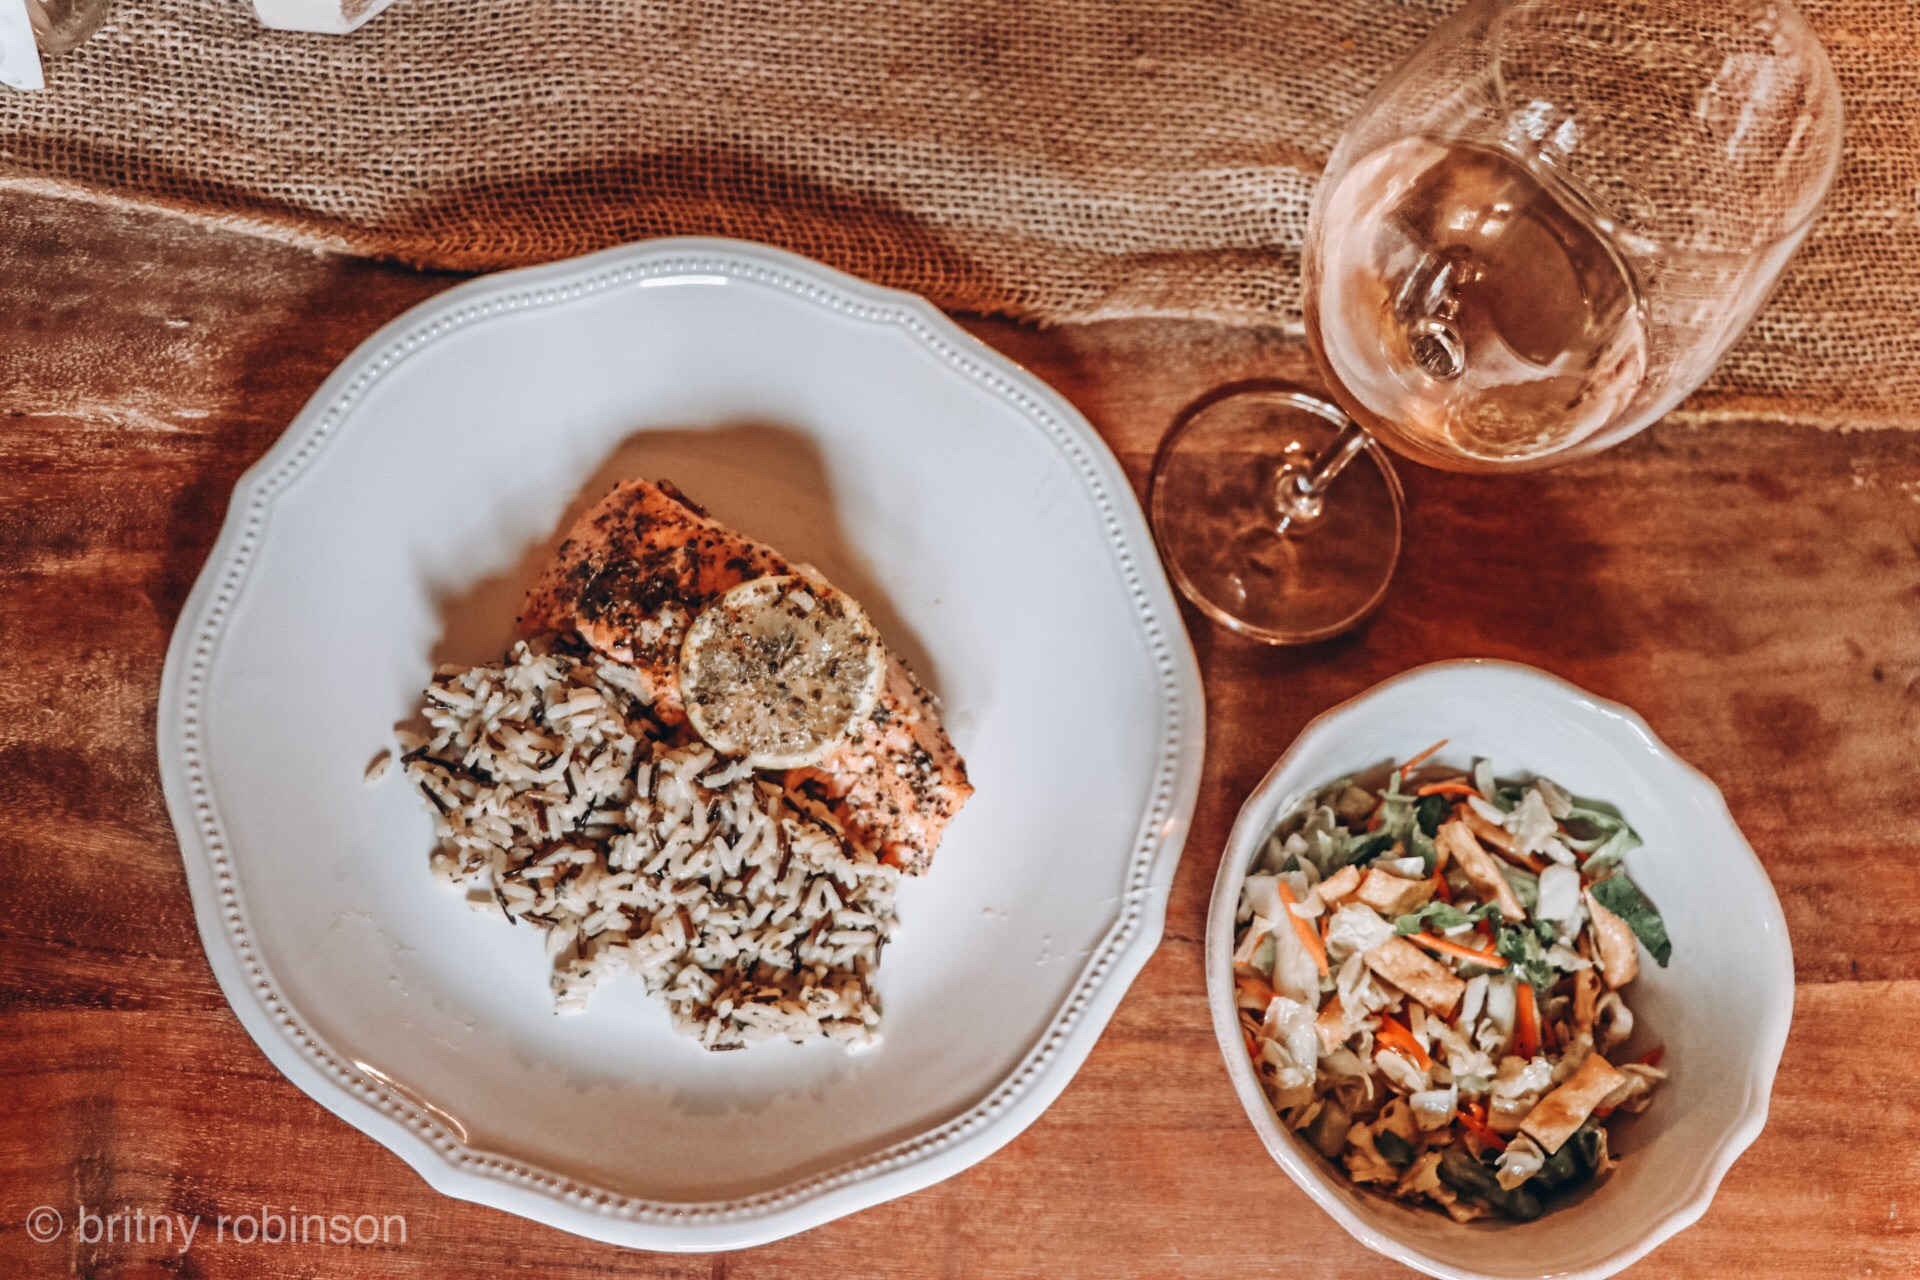 baked salmon meal in 30 minutes